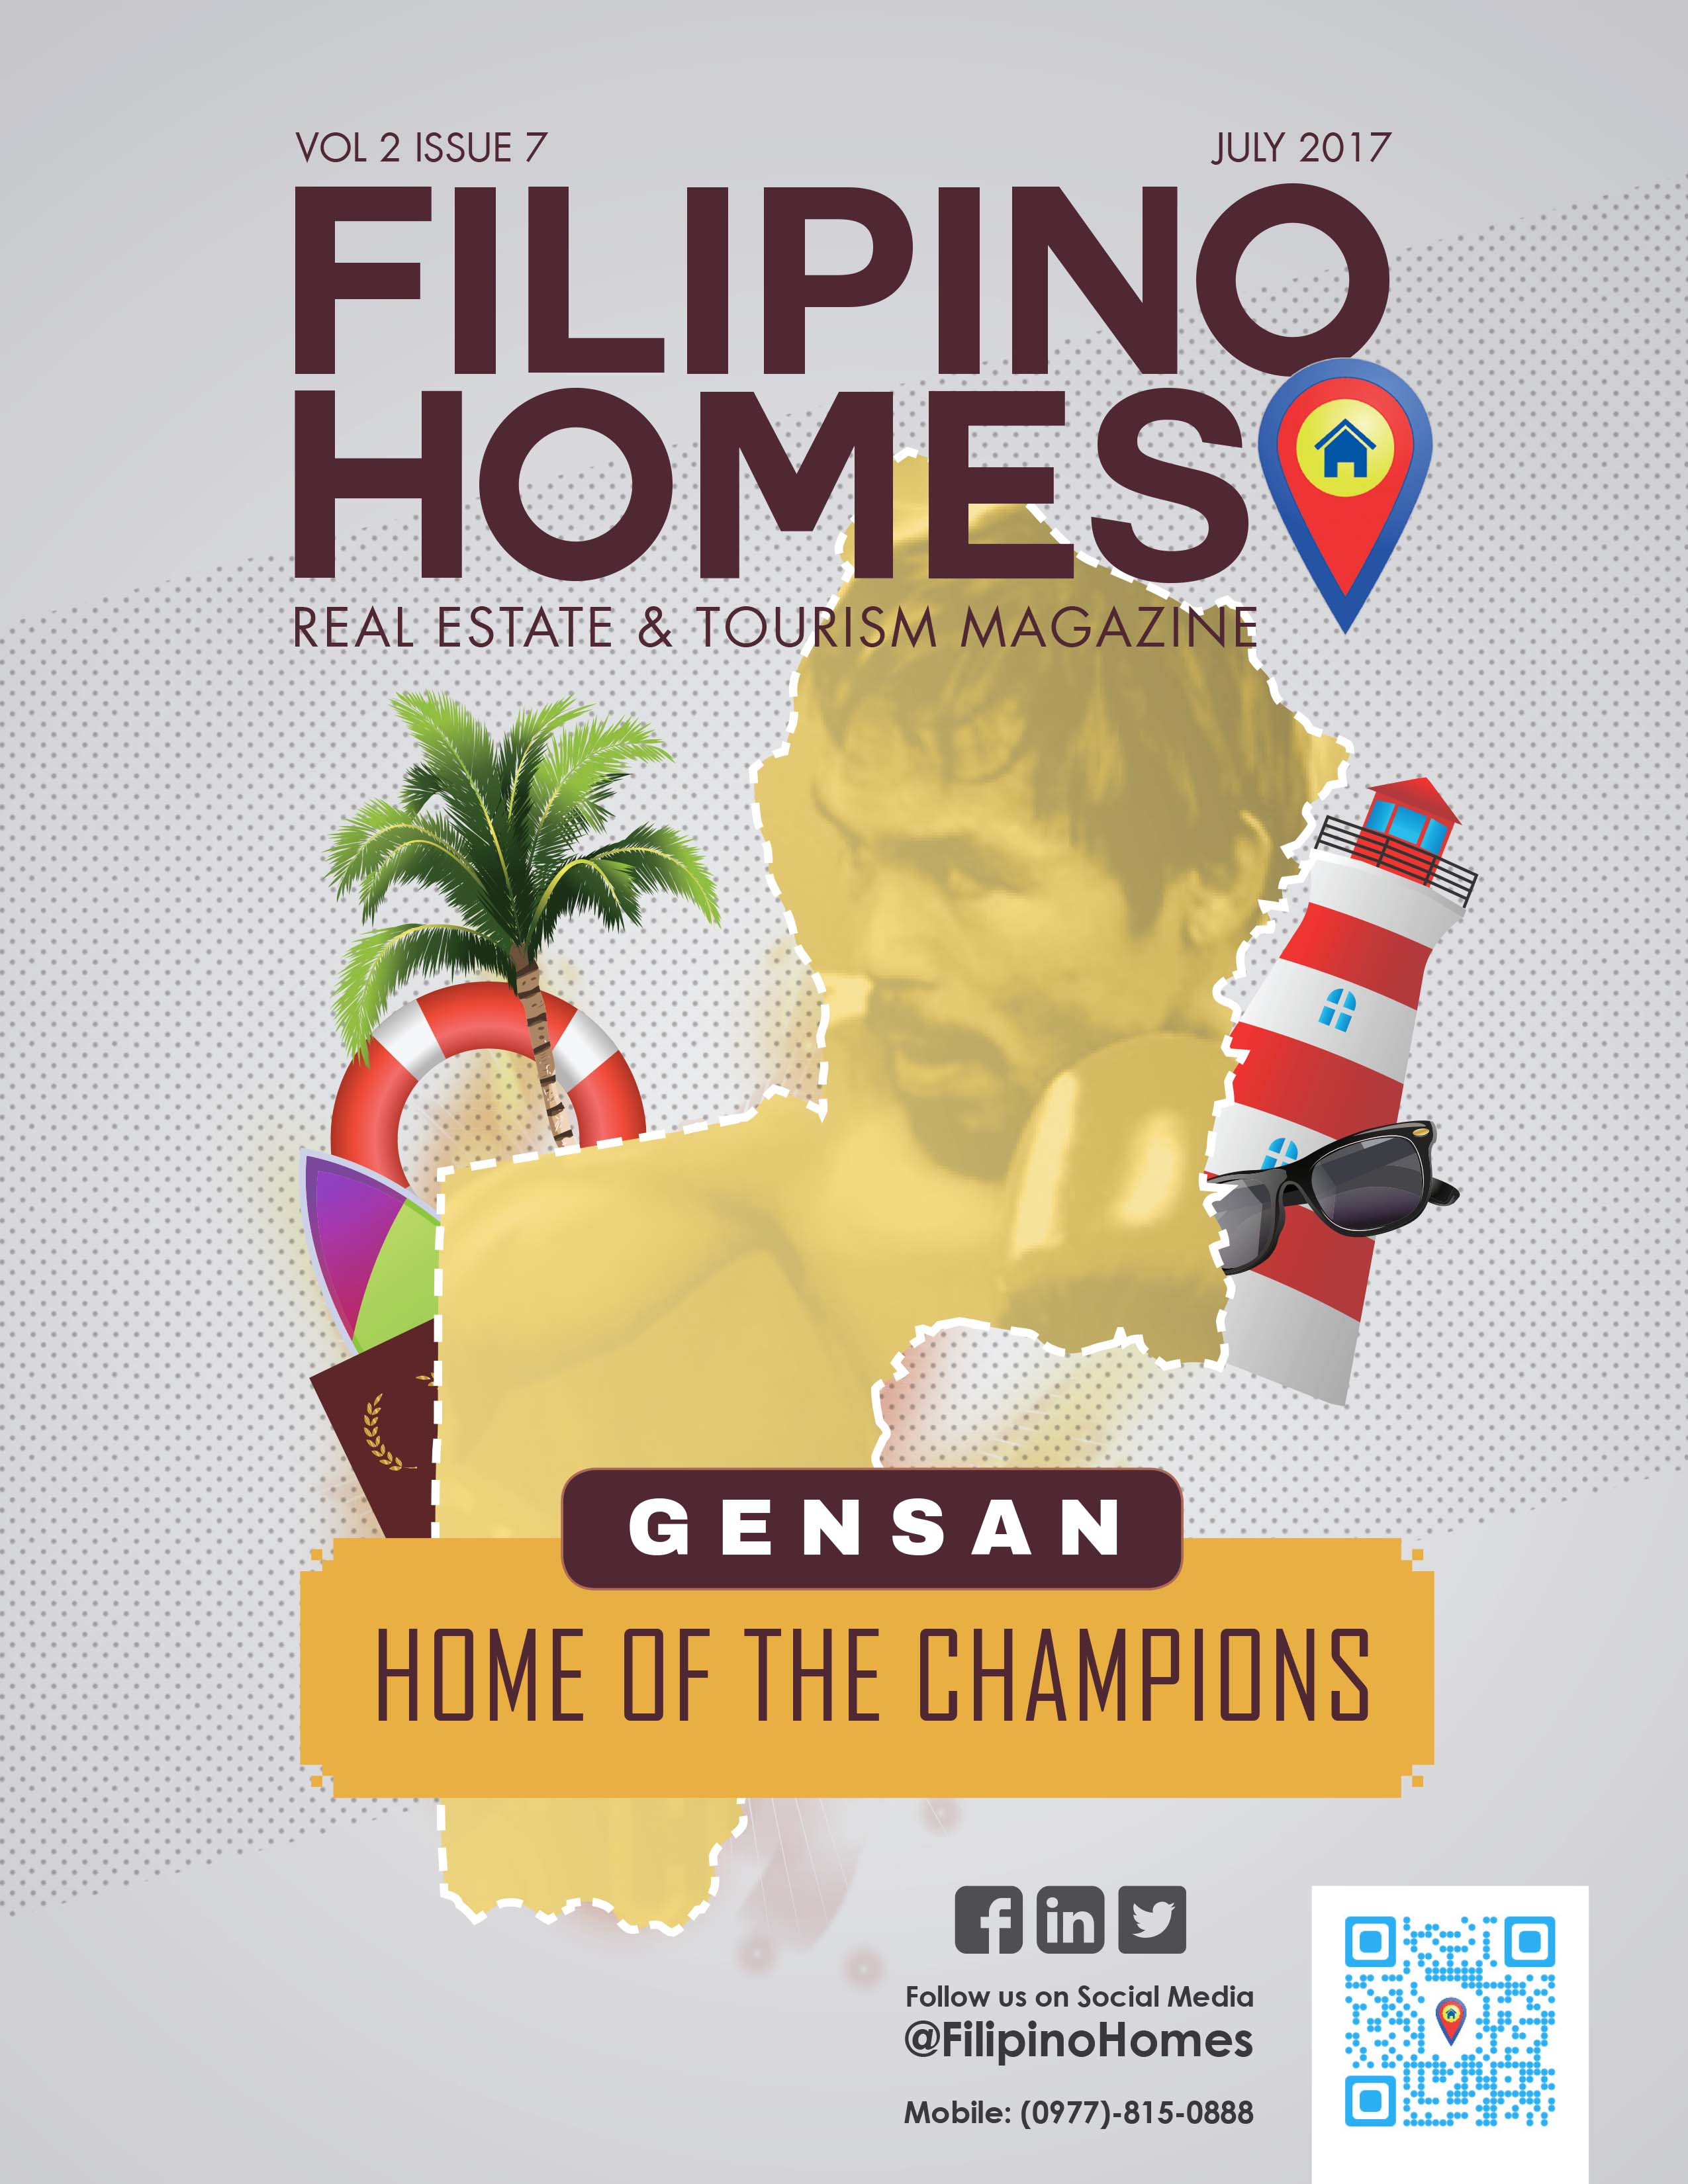 Filipino Homes Real Estate & Tourism Magazine: Gensan